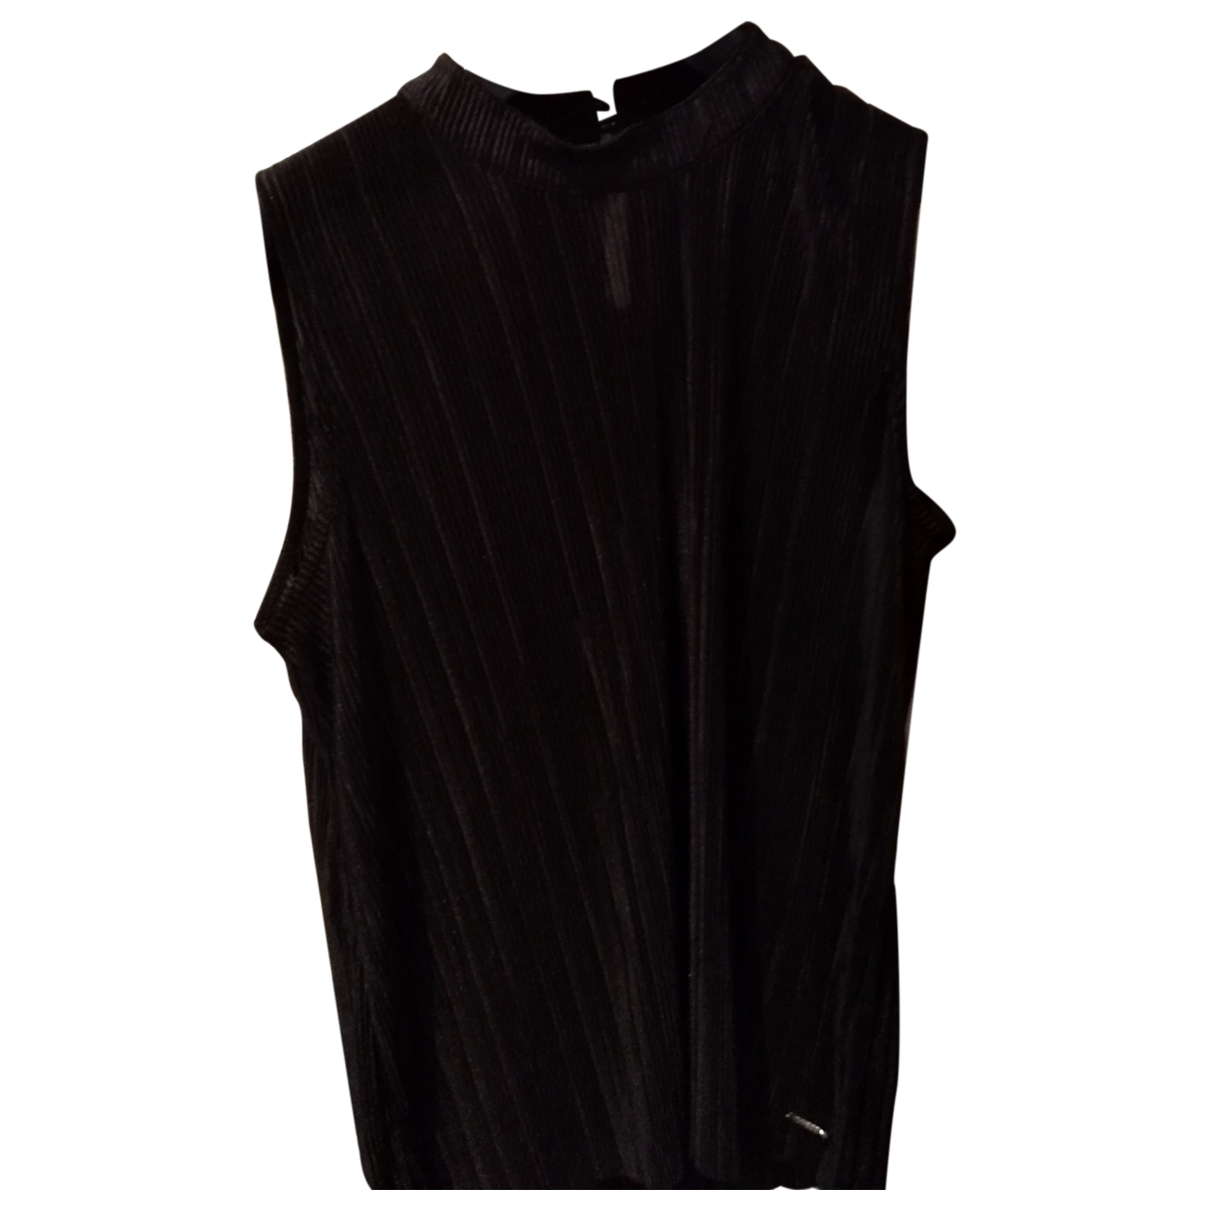 Guess \N Black  top for Women 44 IT